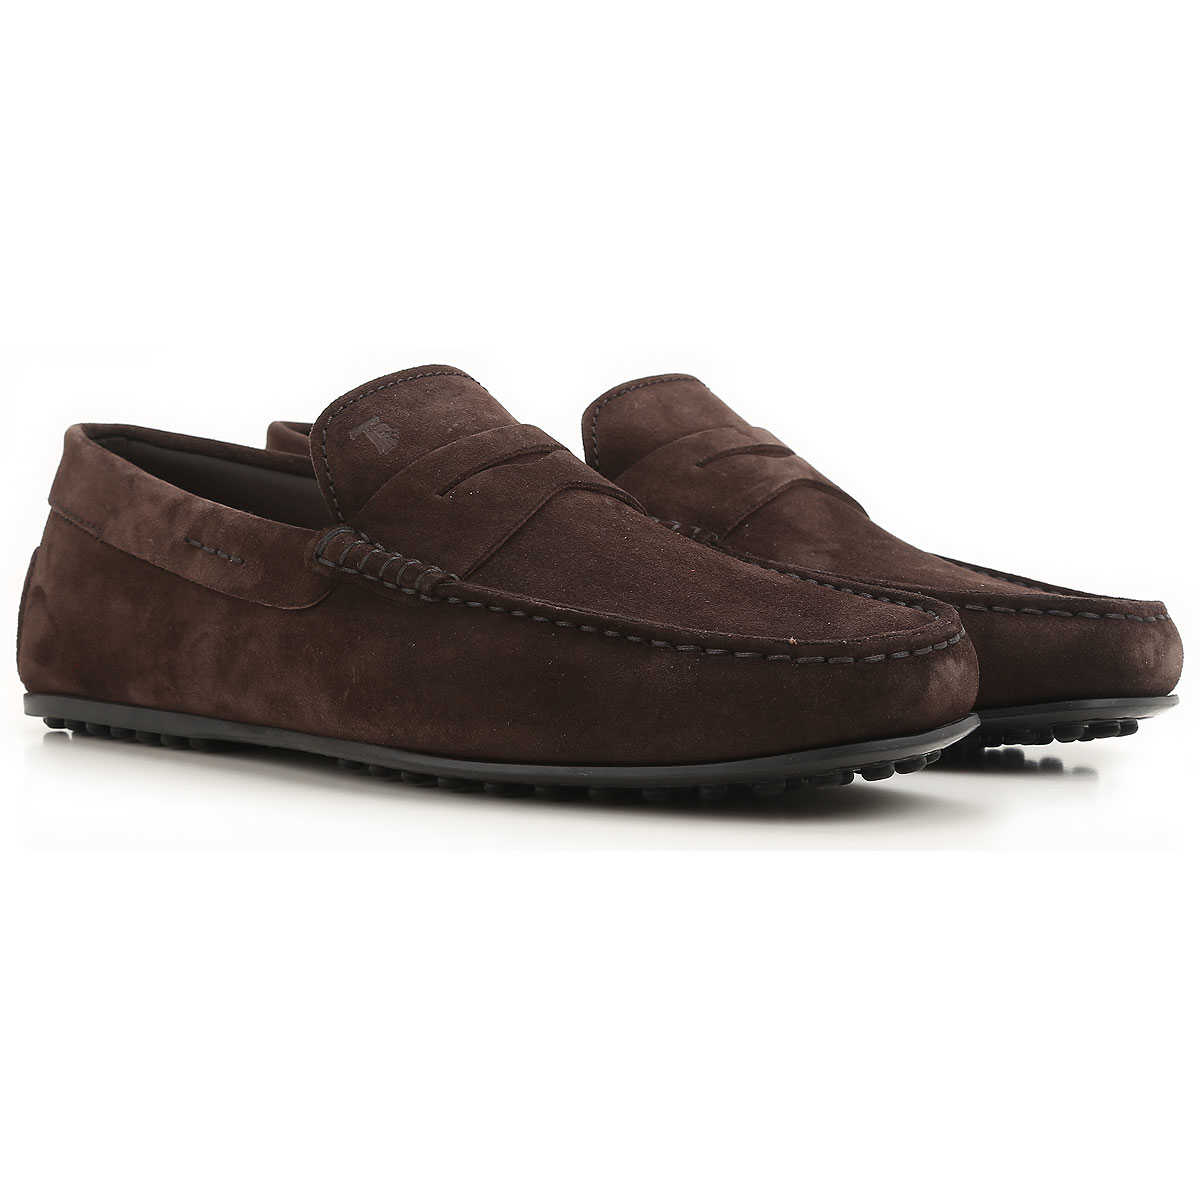 Tods Driver Loafer Shoes for Men Dark Brown USA - GOOFASH